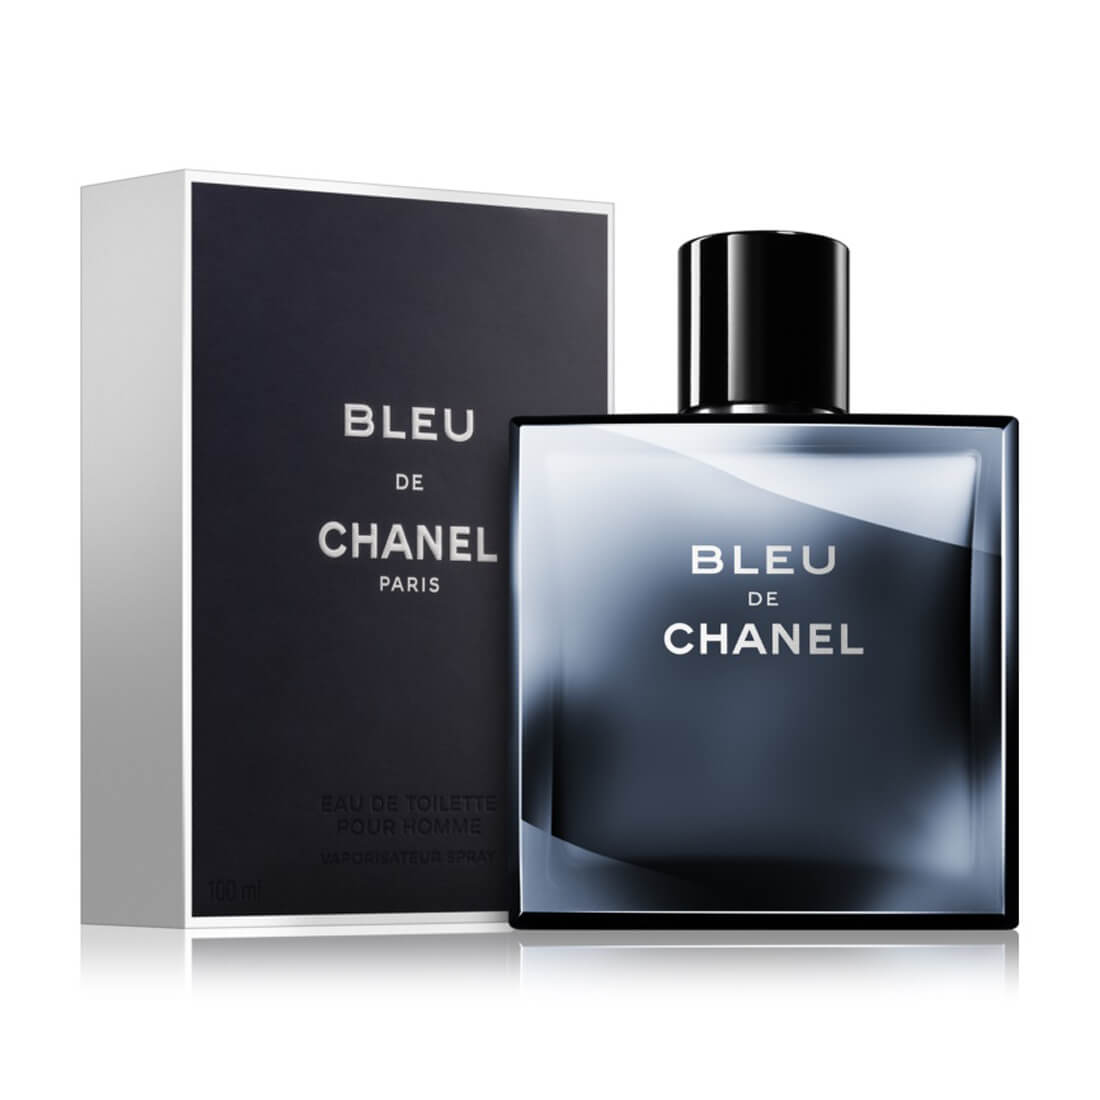 Chanel Bleu De Chanel Eau De Toilette For Men - 100ml